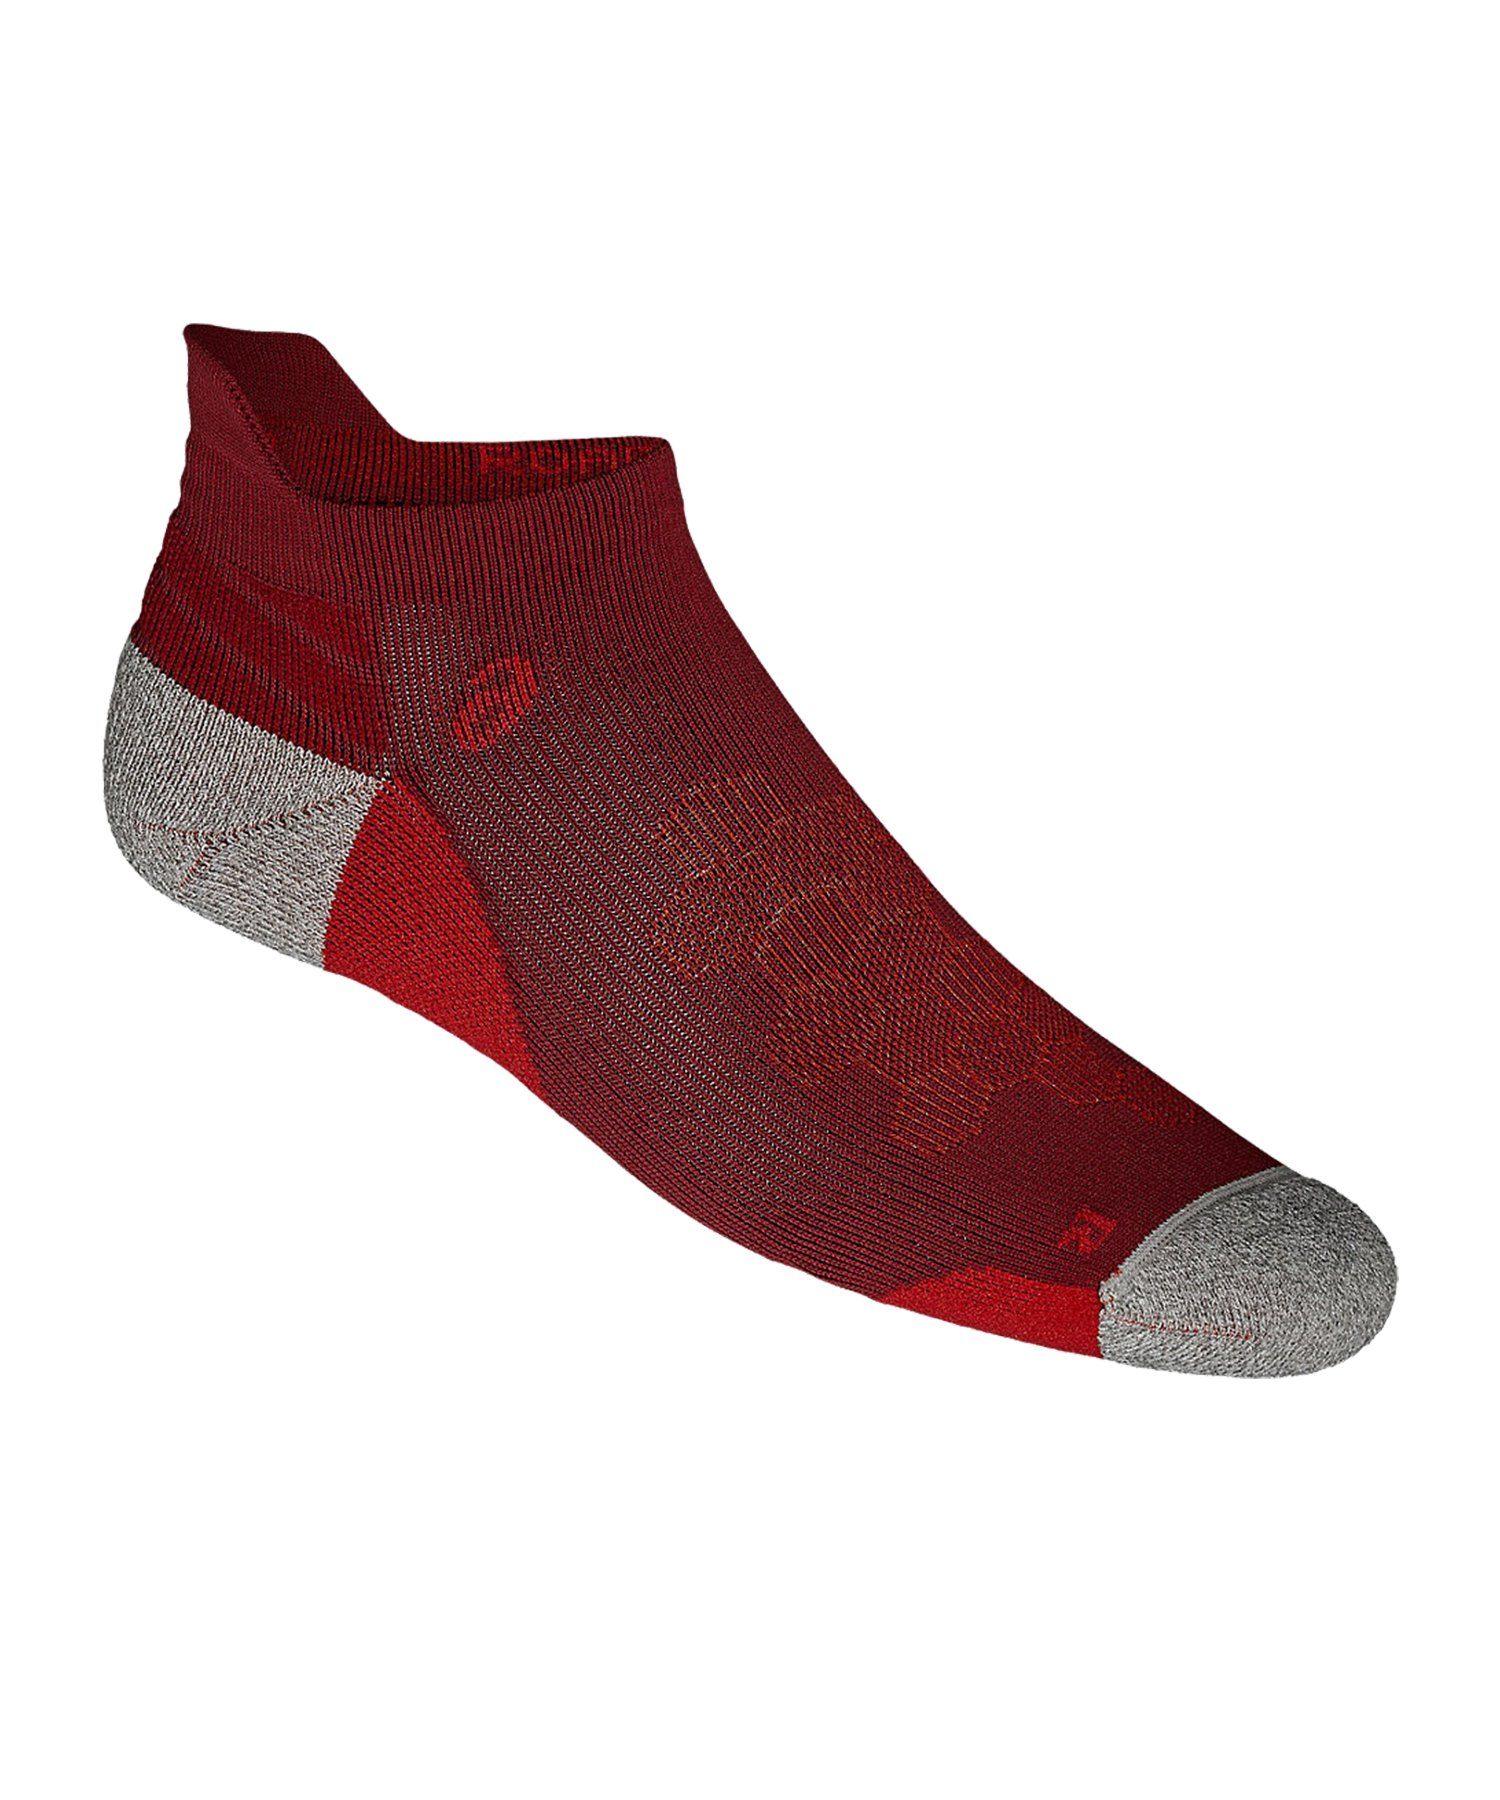 Asics Road Neutral Ankle Single Tab Socken F633 - rot